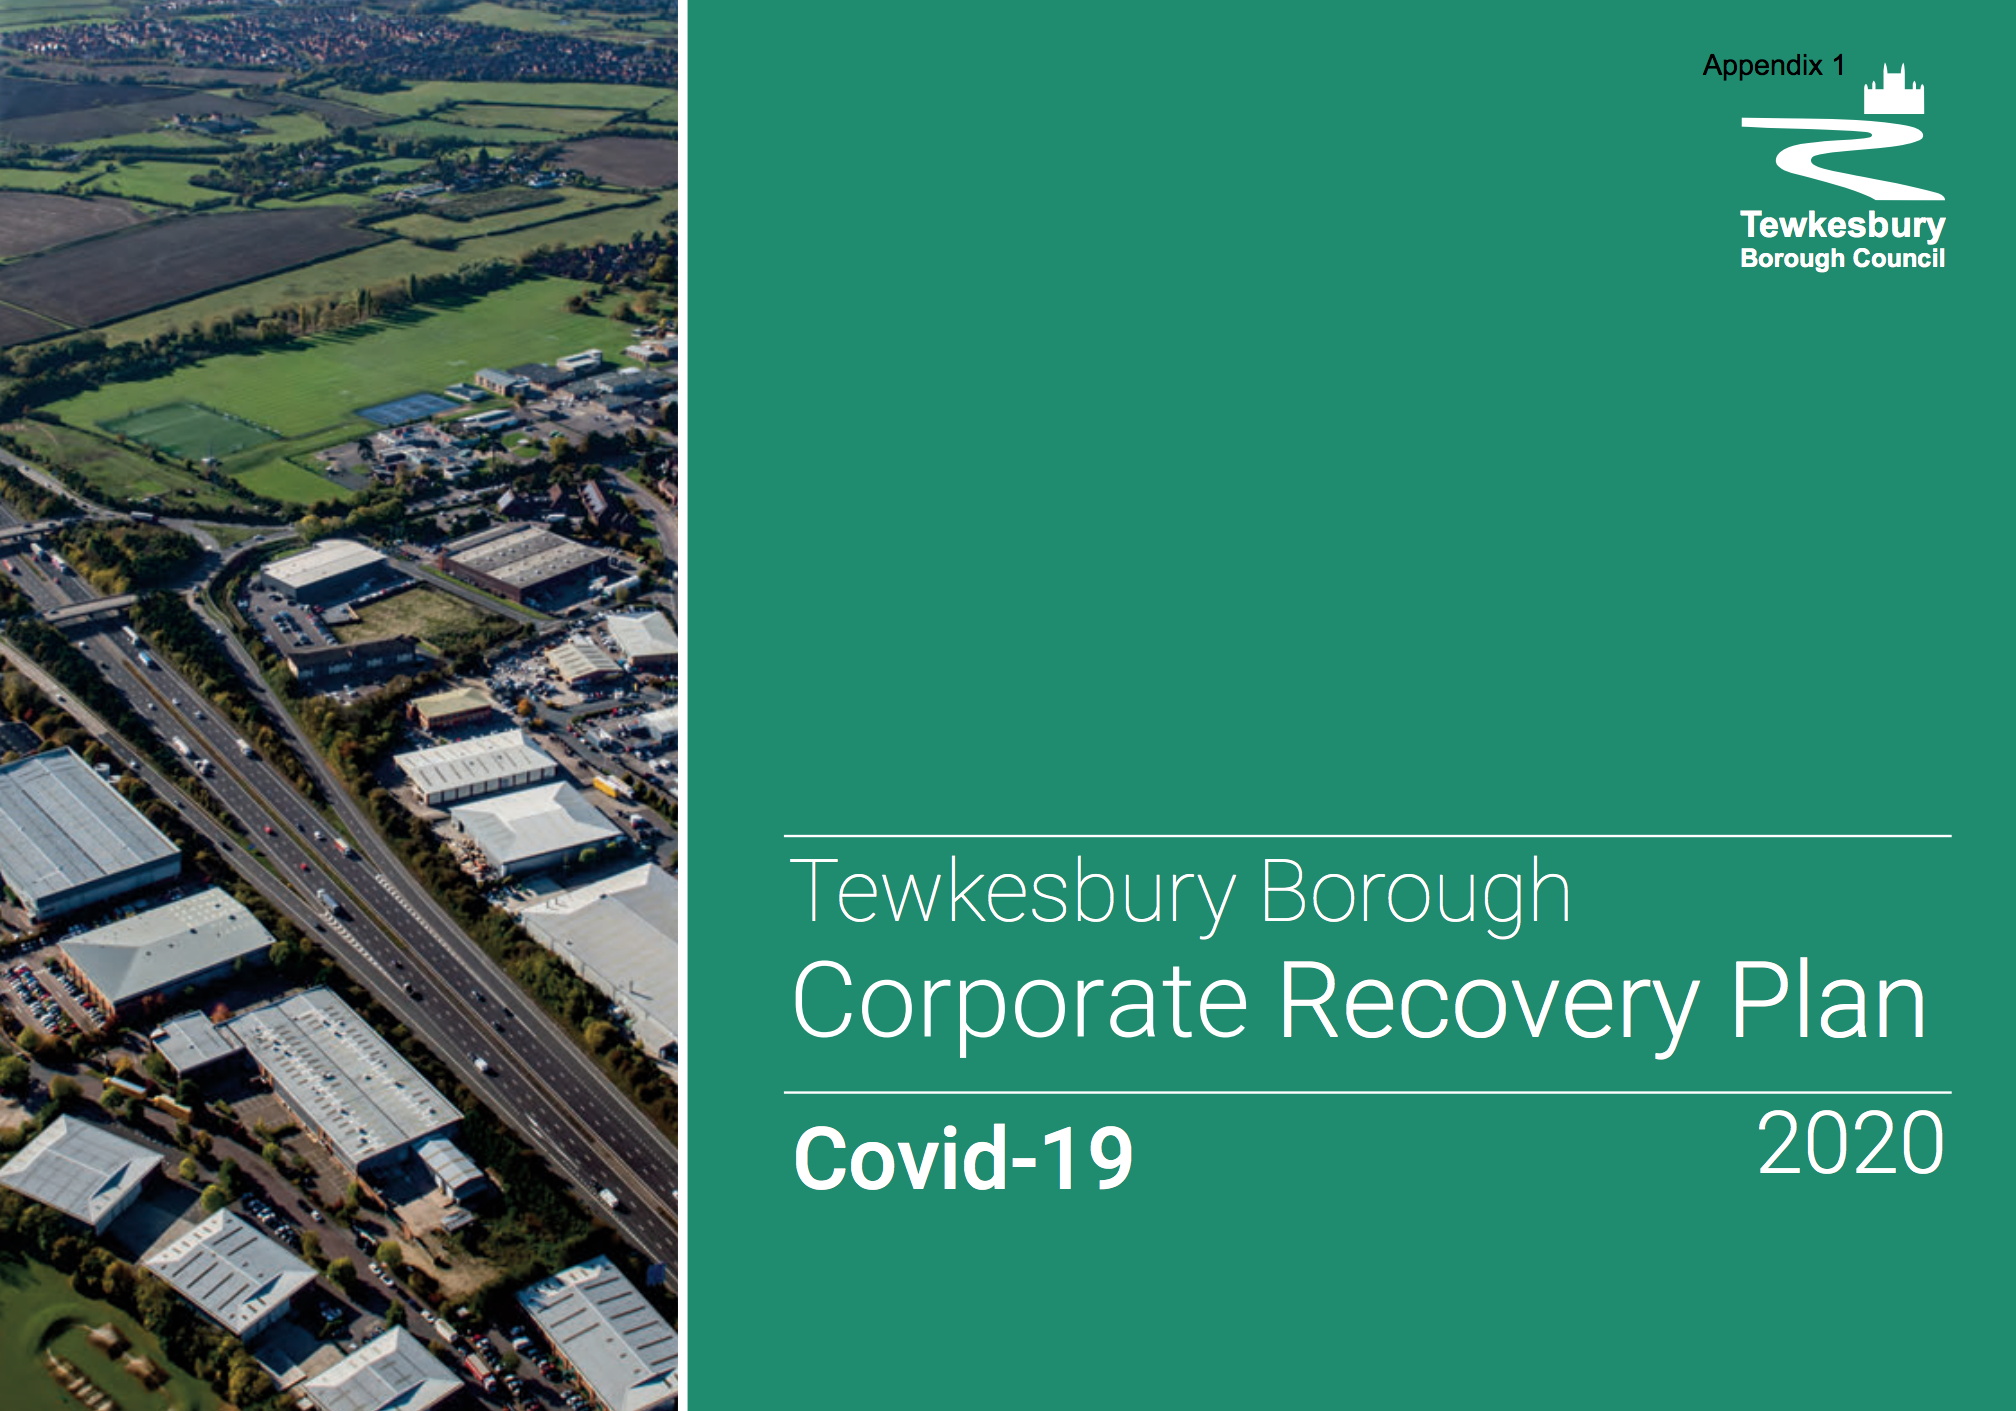 Corporate Recovery Plan 2020 for Covid-19